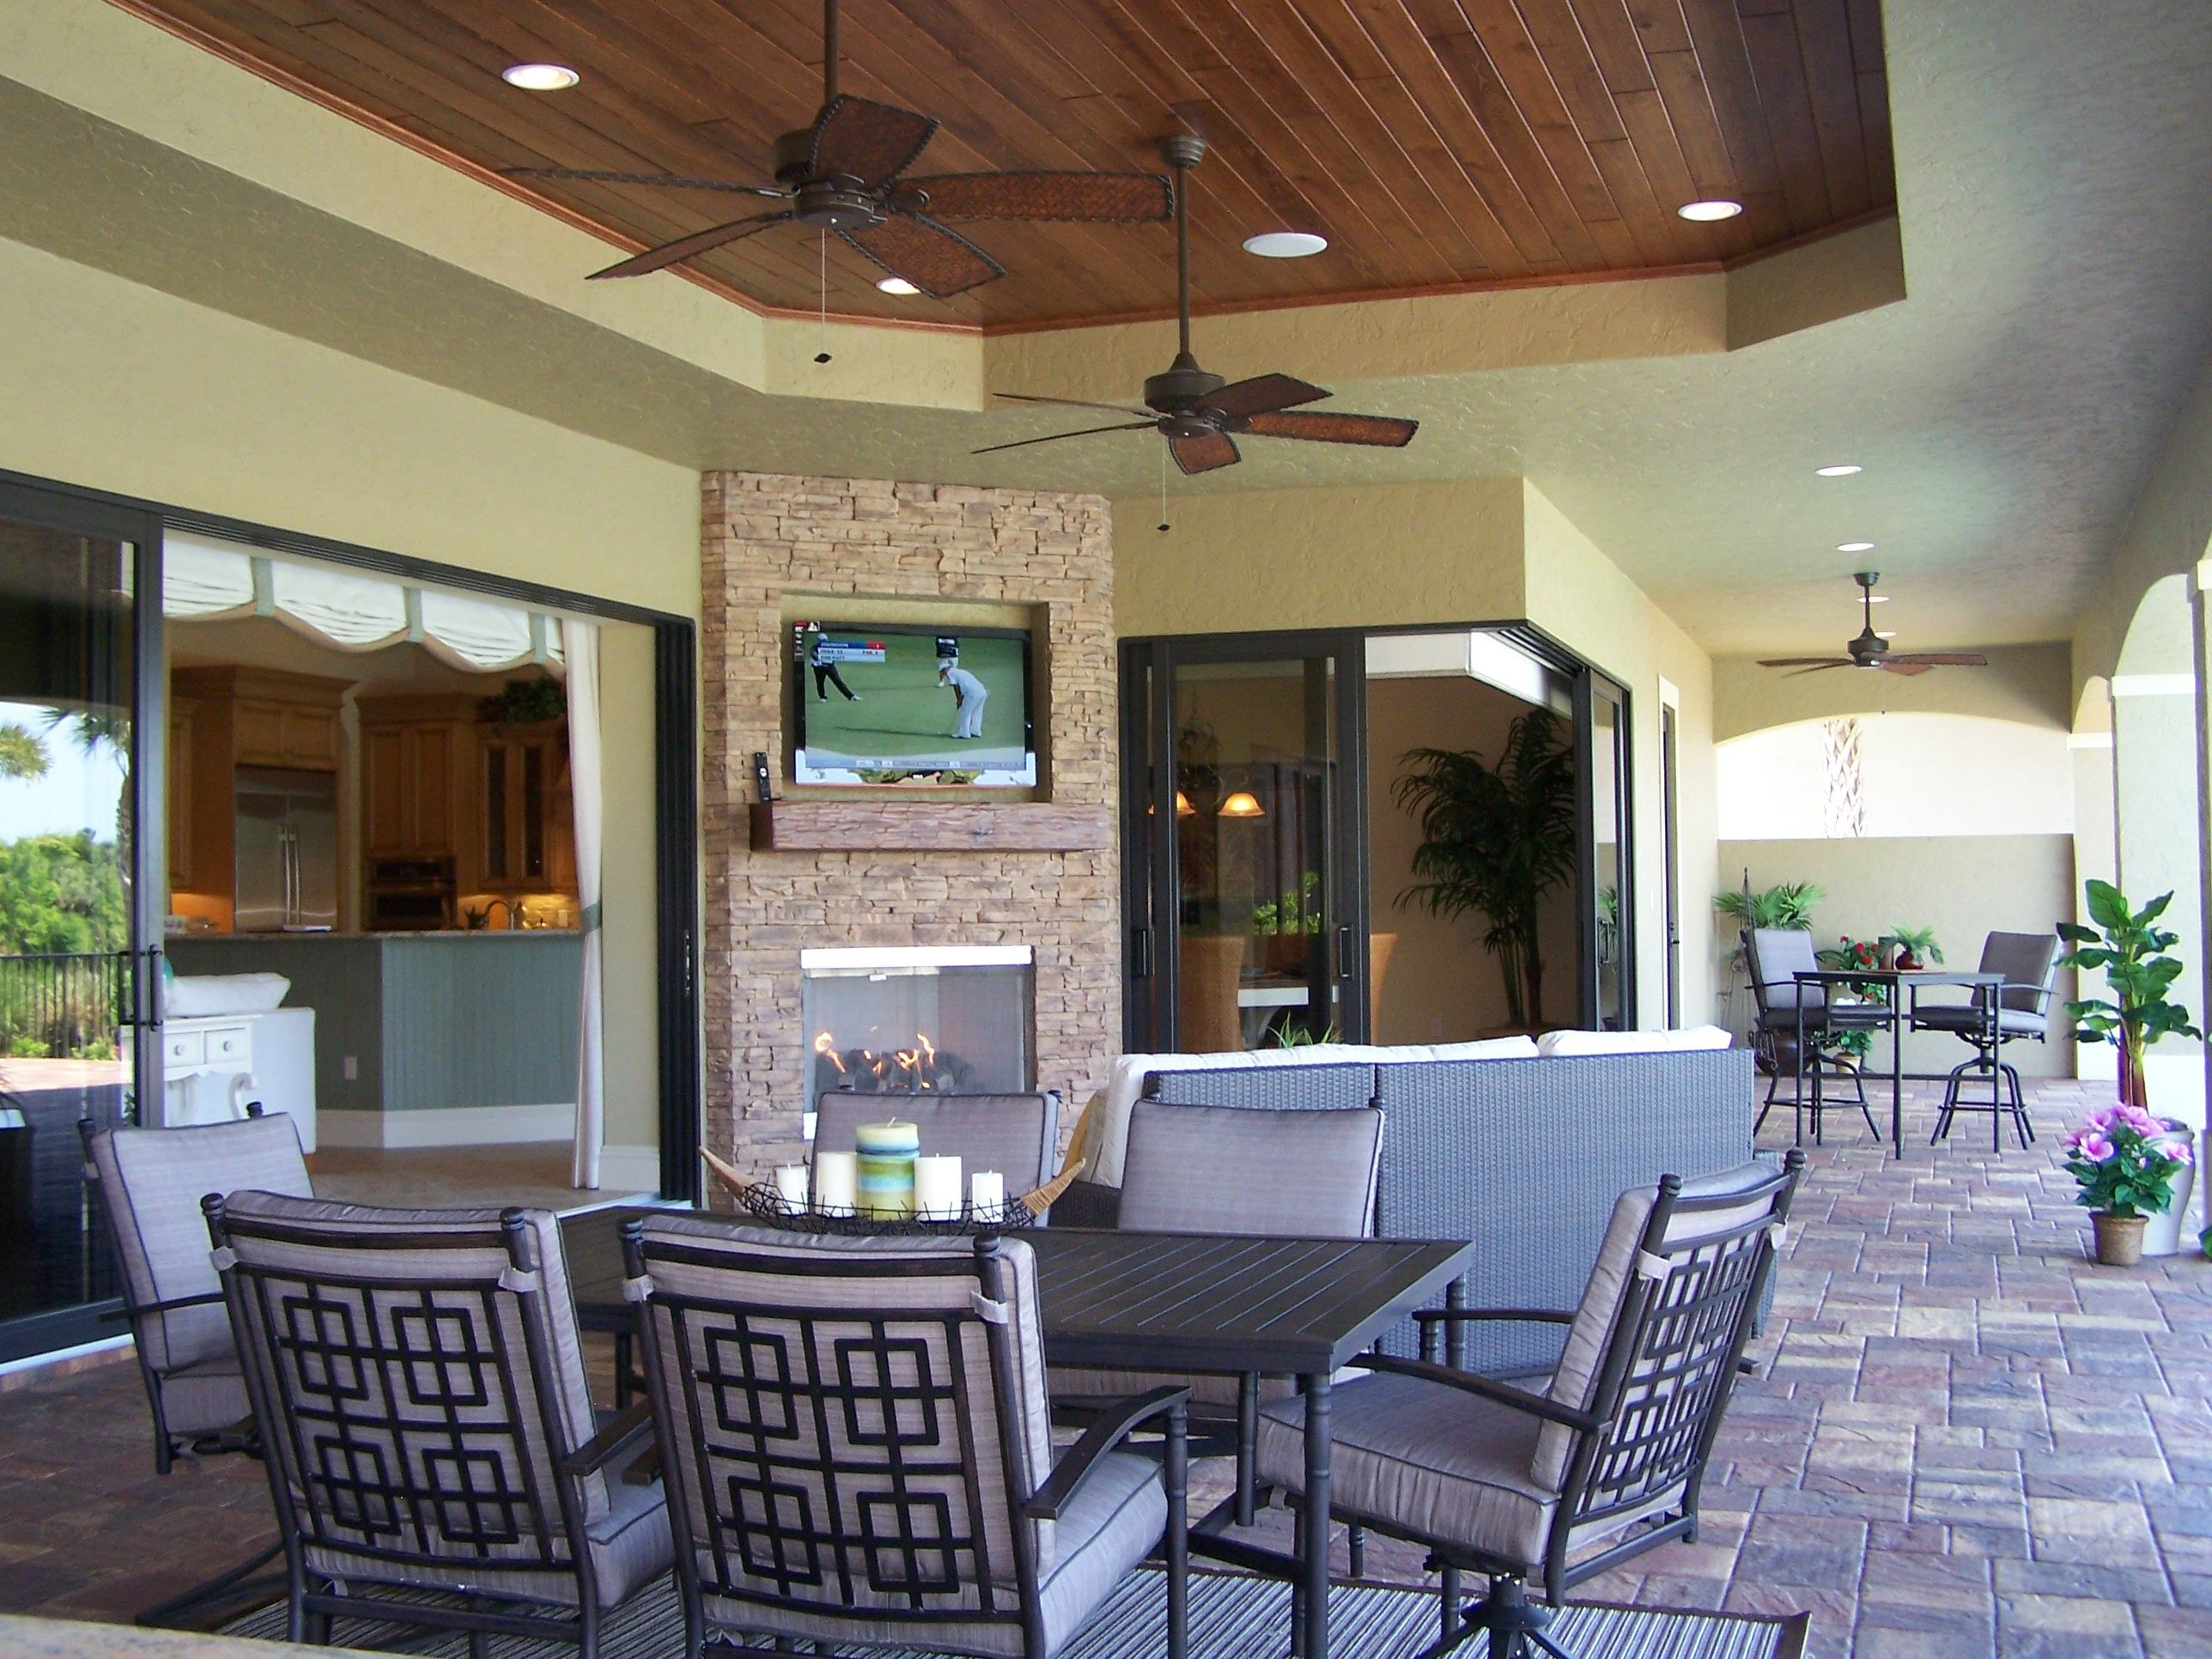 Amazing Outdoor Great Room Ideas Part - 8: Great Room Designer Island Kitchen Outdoor Living Room Expansive Lanai